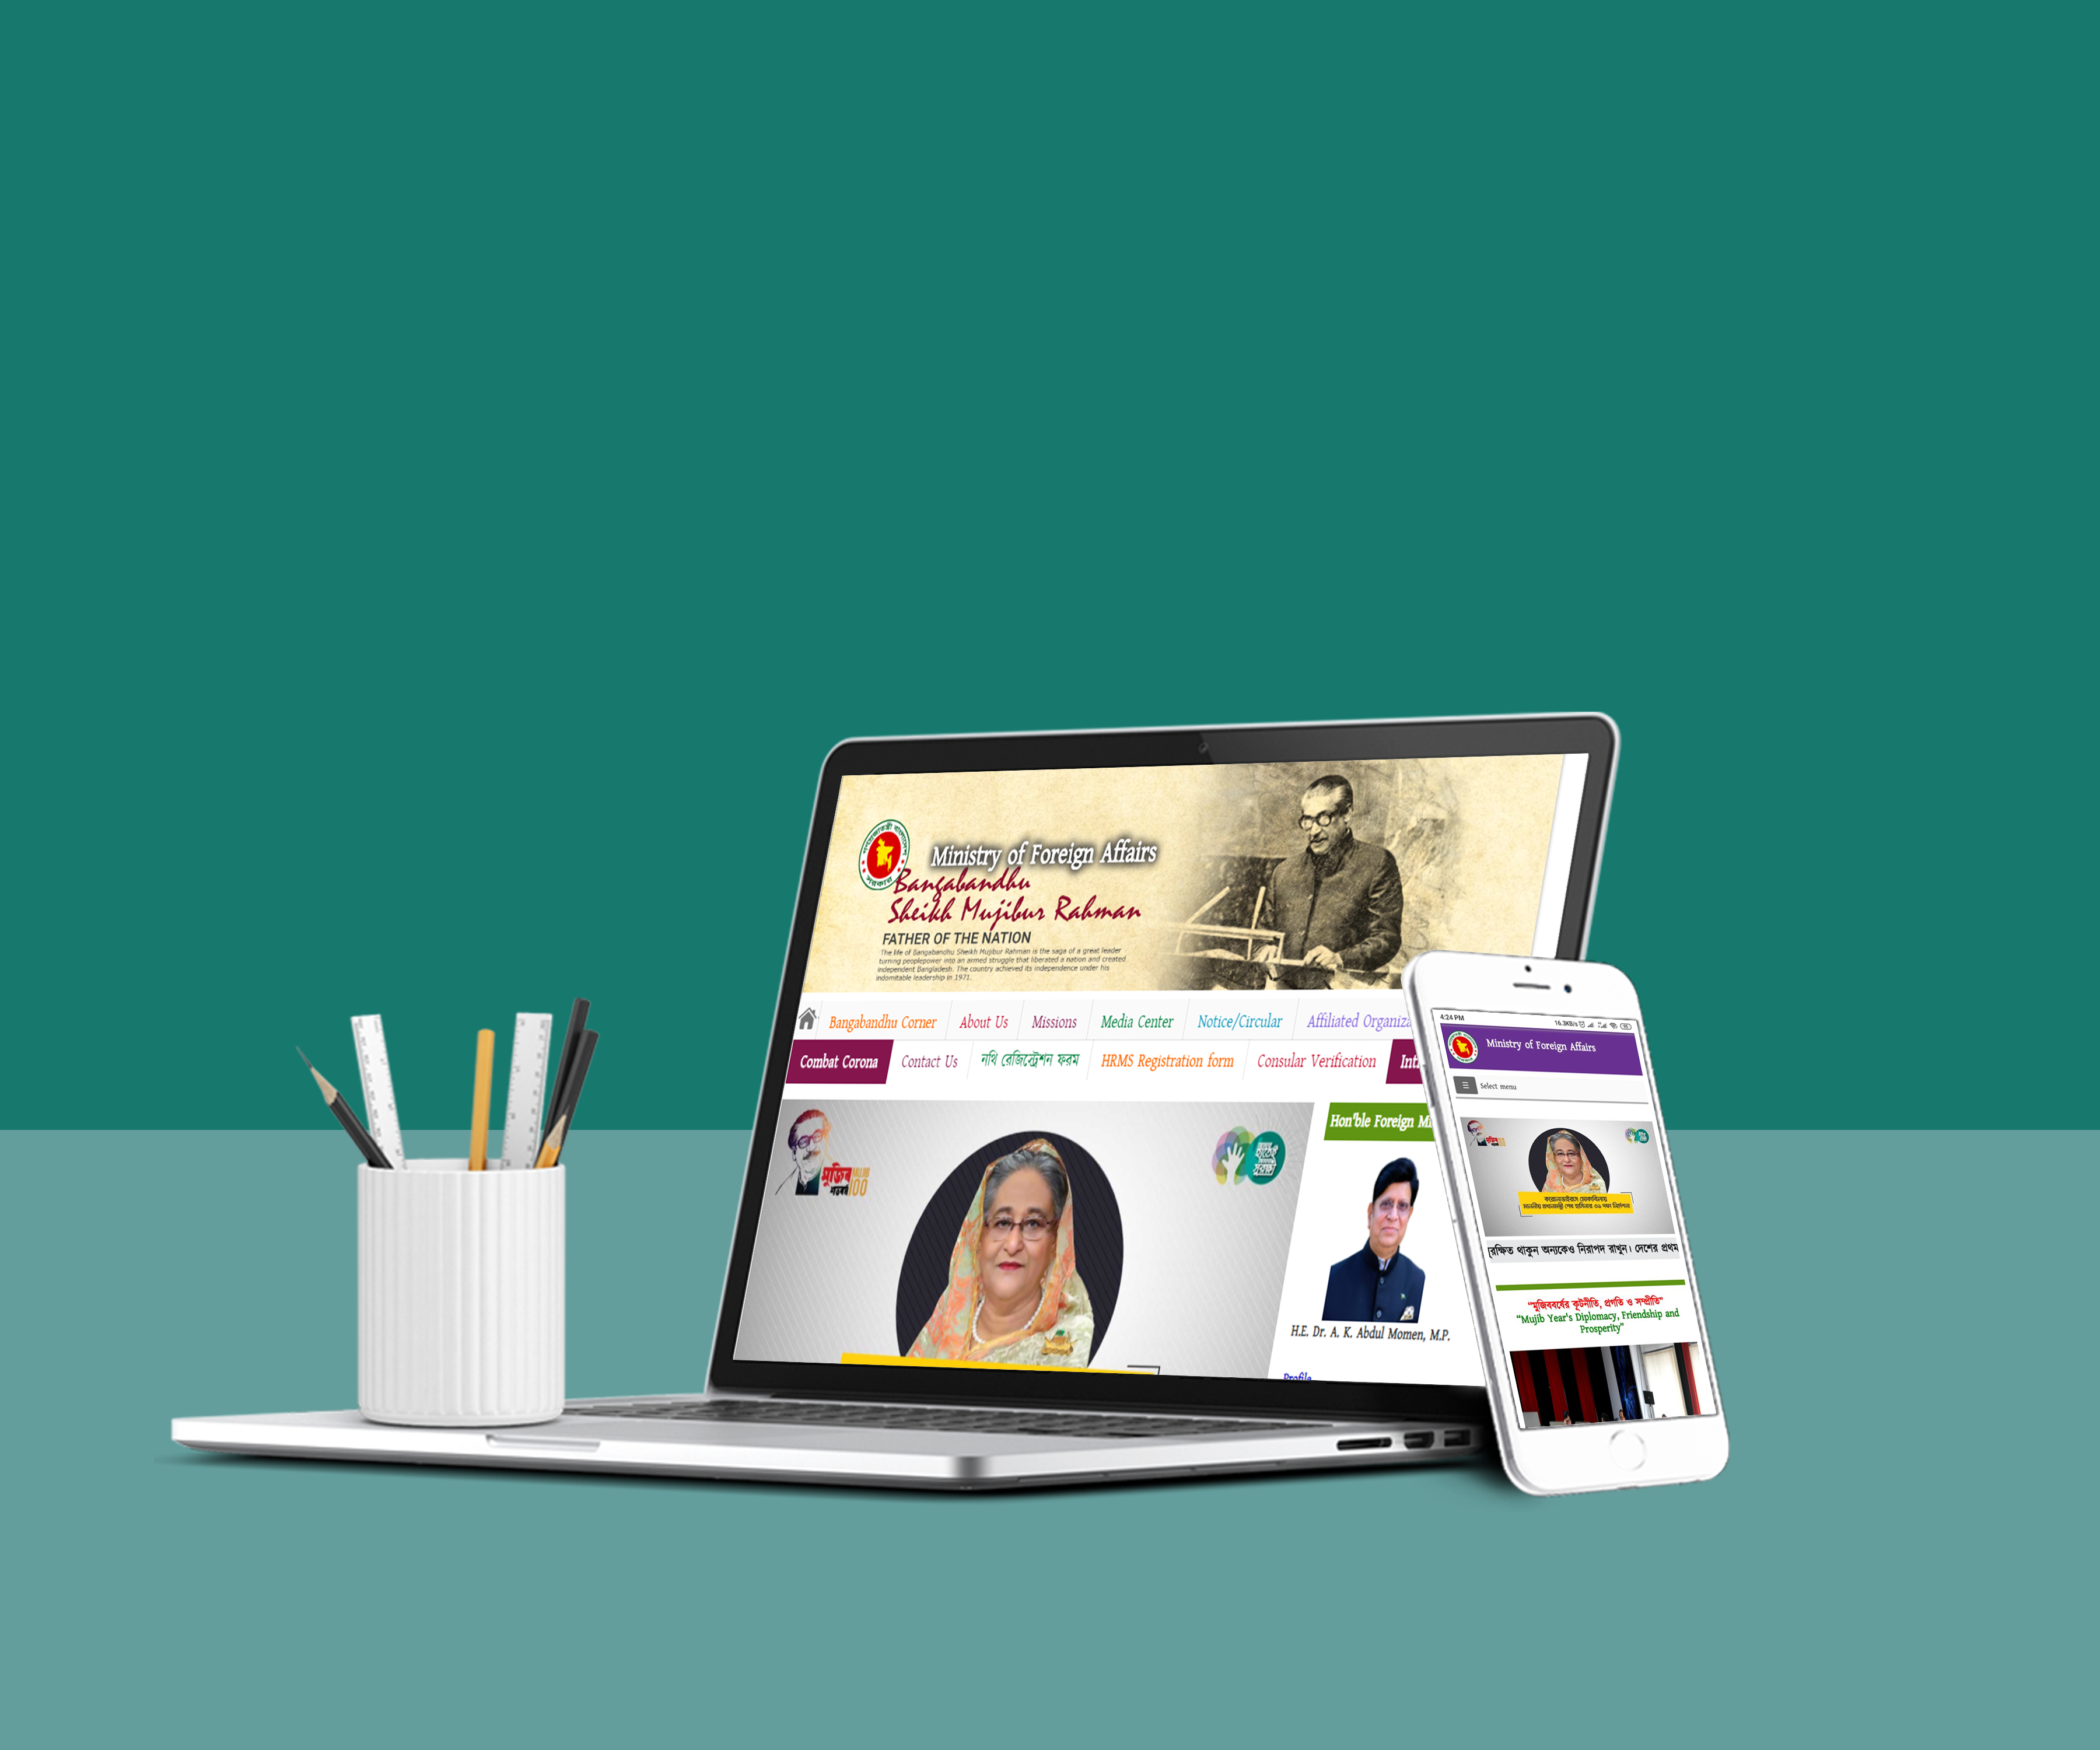 I will design 4 digital mockups for your company or brand or website within 4 hours